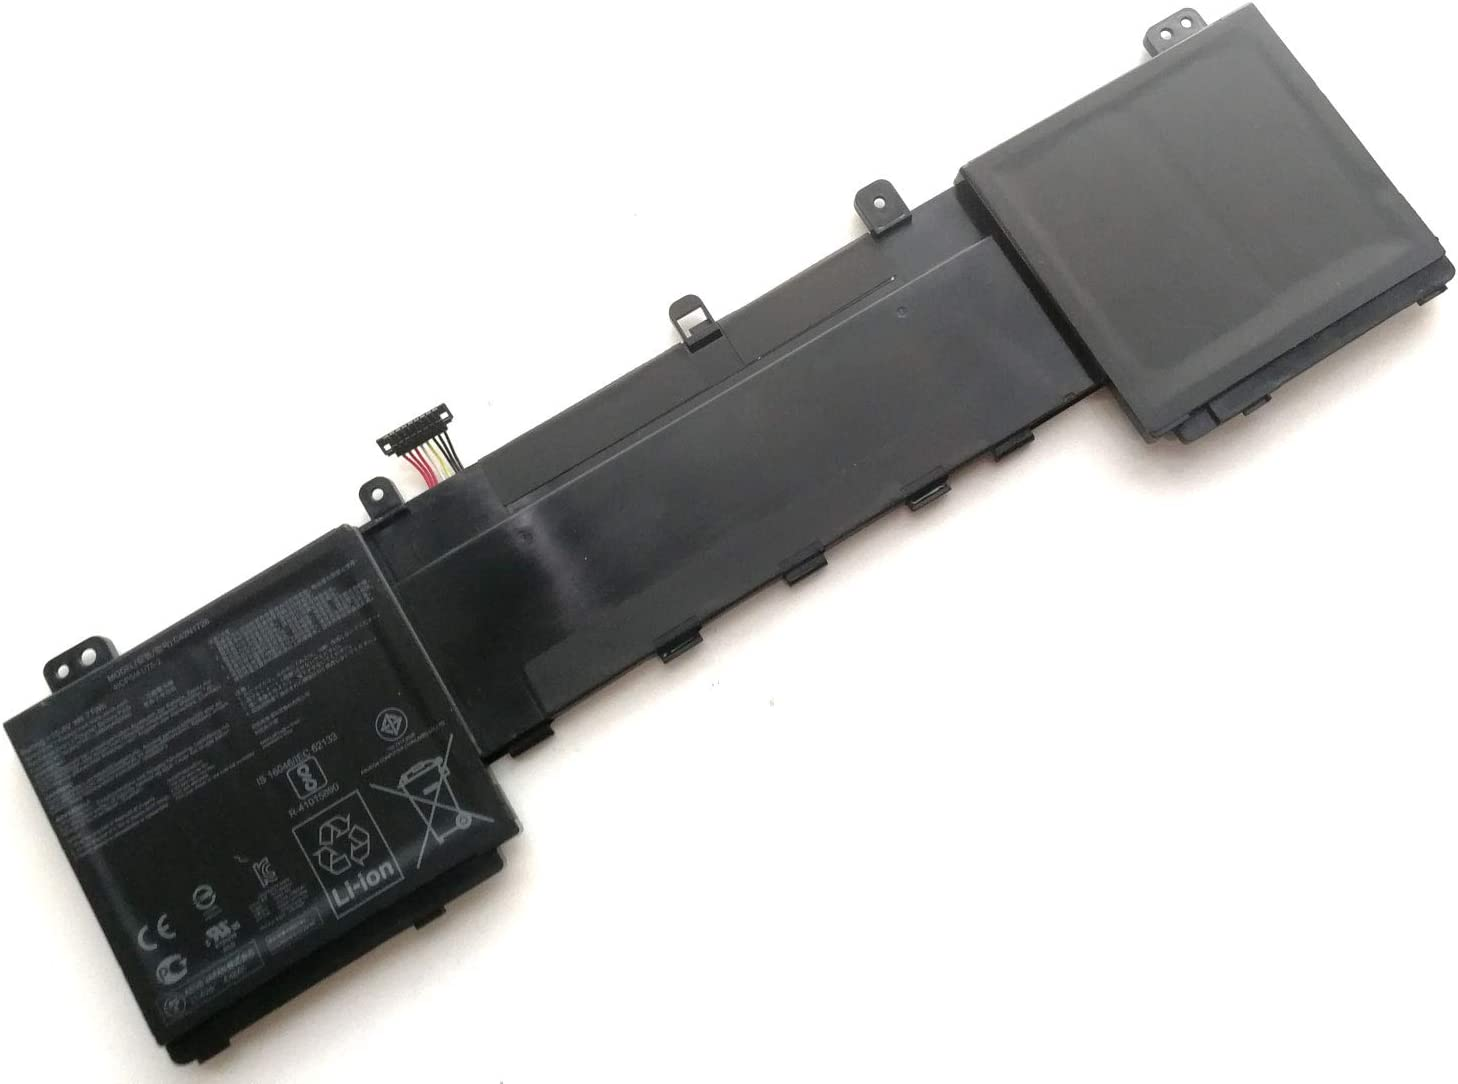 C42N1728 15.4V 71Wh Laptop Battery Replacement for ASUS Zenbook Pro U5500 UX550GDX UX550GE UX550GEX UX550GD Series C42PHCH 0B200-02520100E